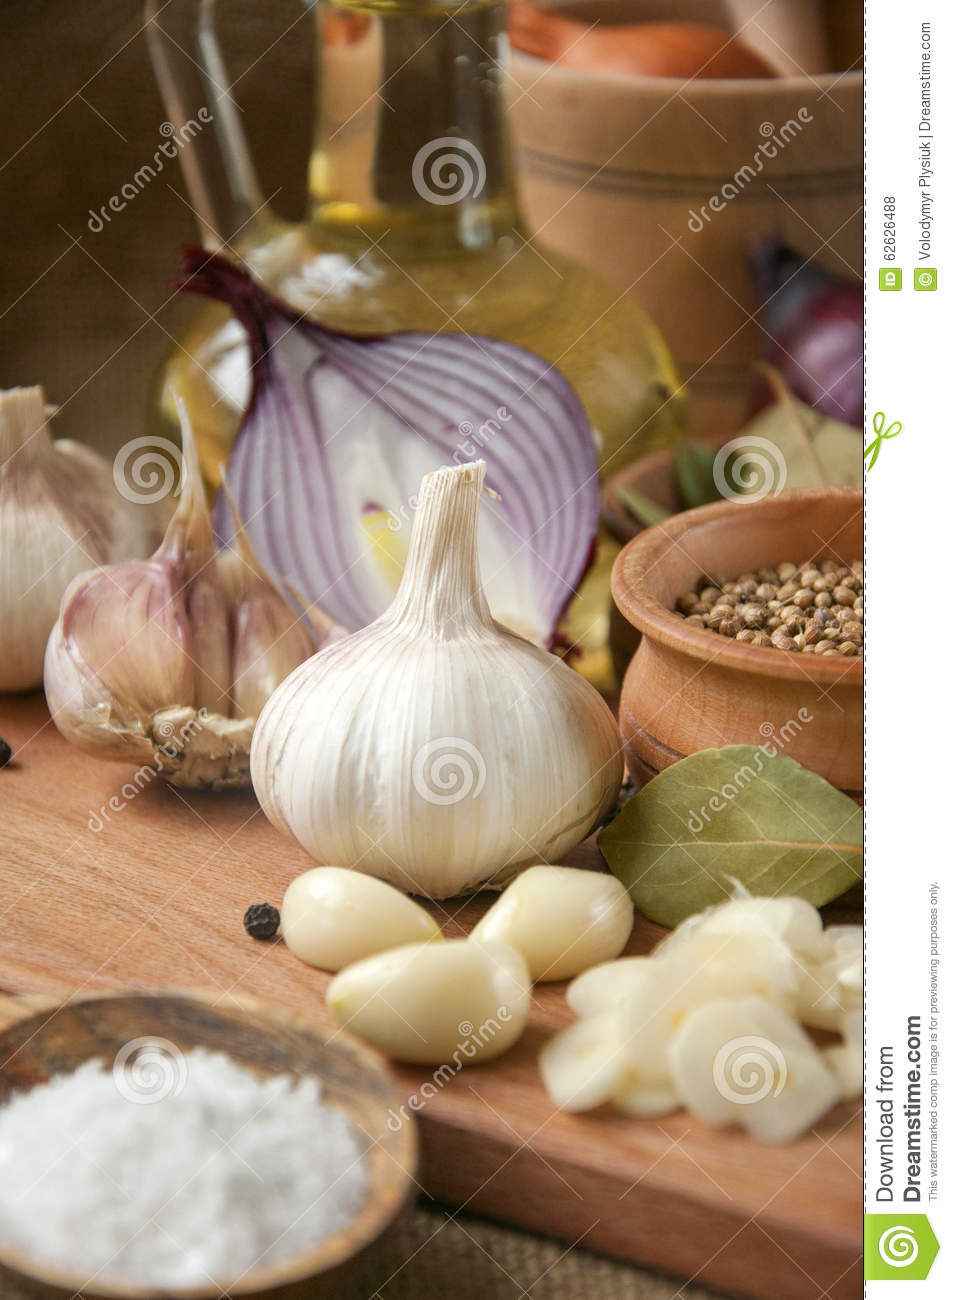 Wallpaper Food Cooking Grill Vegetables Peppers: Garlic, Onion, Coriander, Sesame Seeds, Black Pepper, Bay